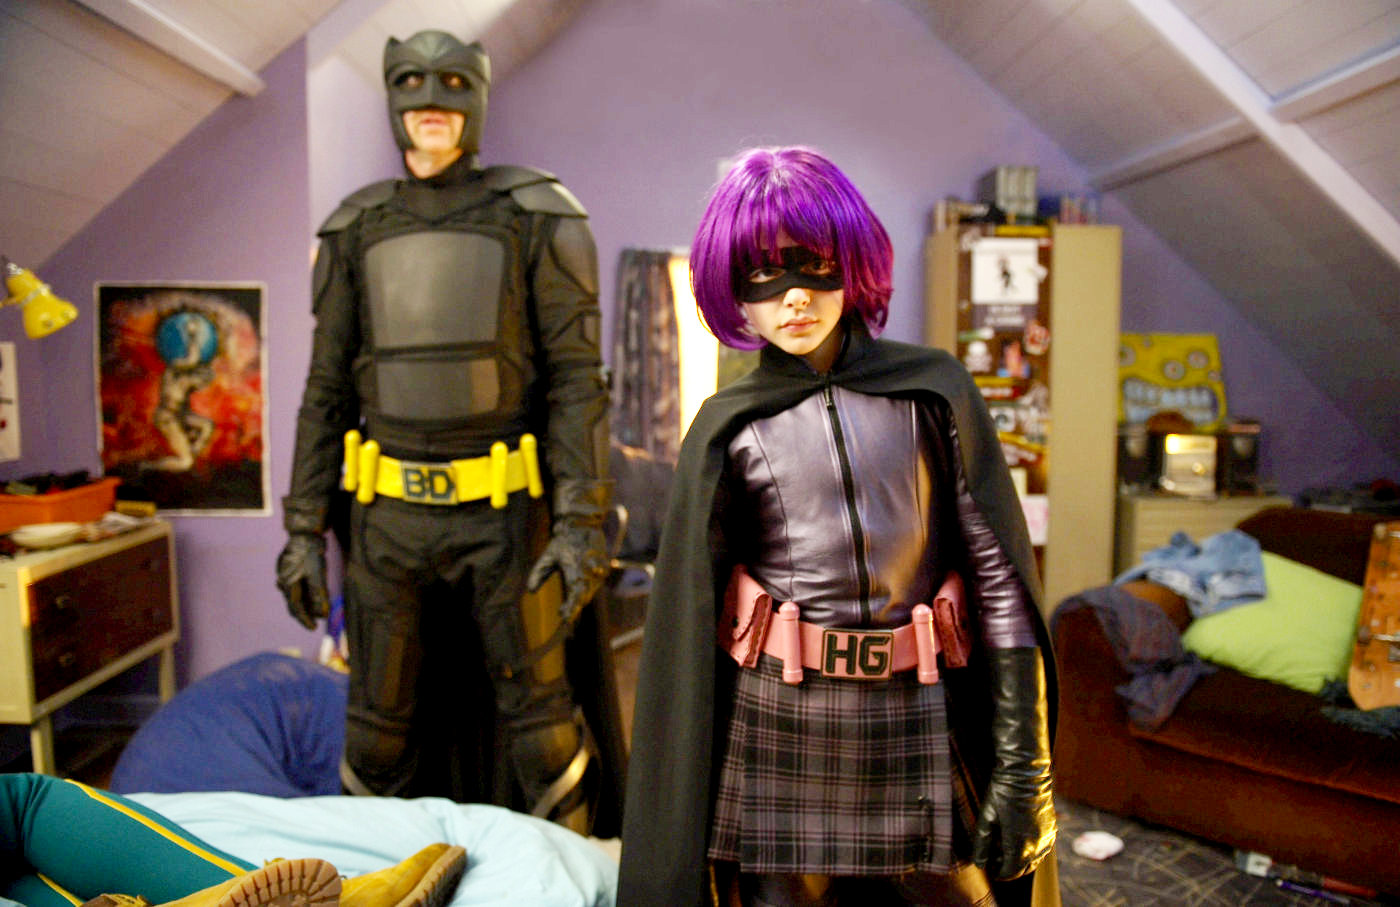 Hit-Girl și Big Daddy